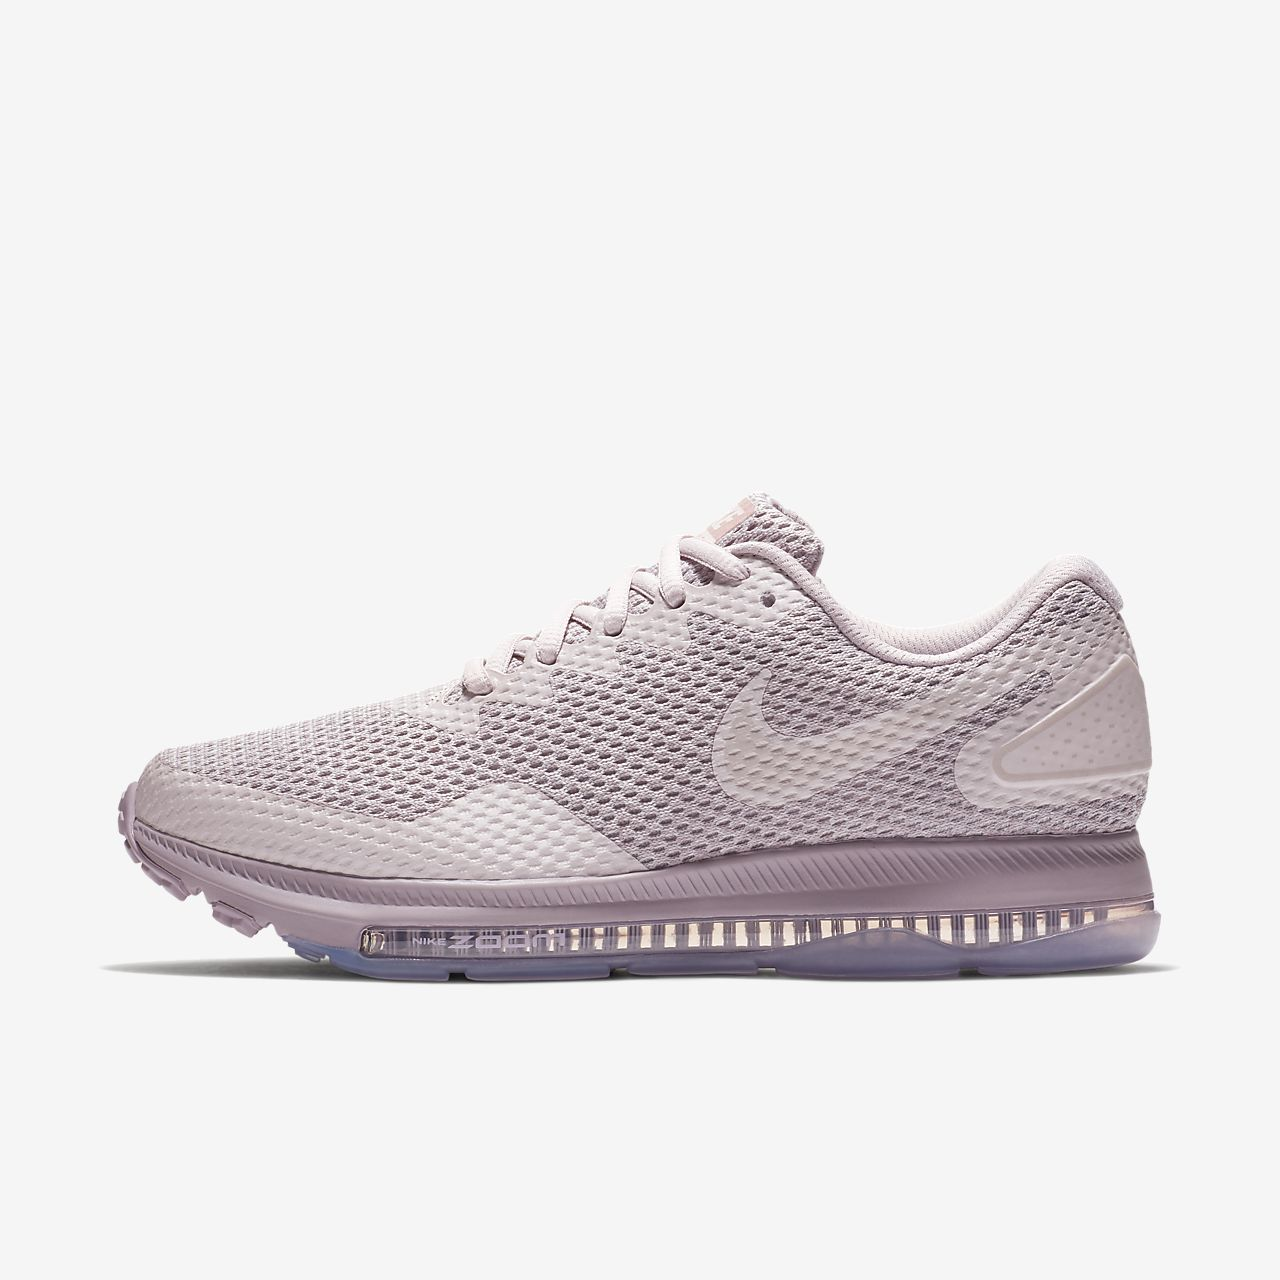 the best attitude 275b6 c2c96 ... Chaussure de running Nike Zoom All Out Low 2 pour Femme